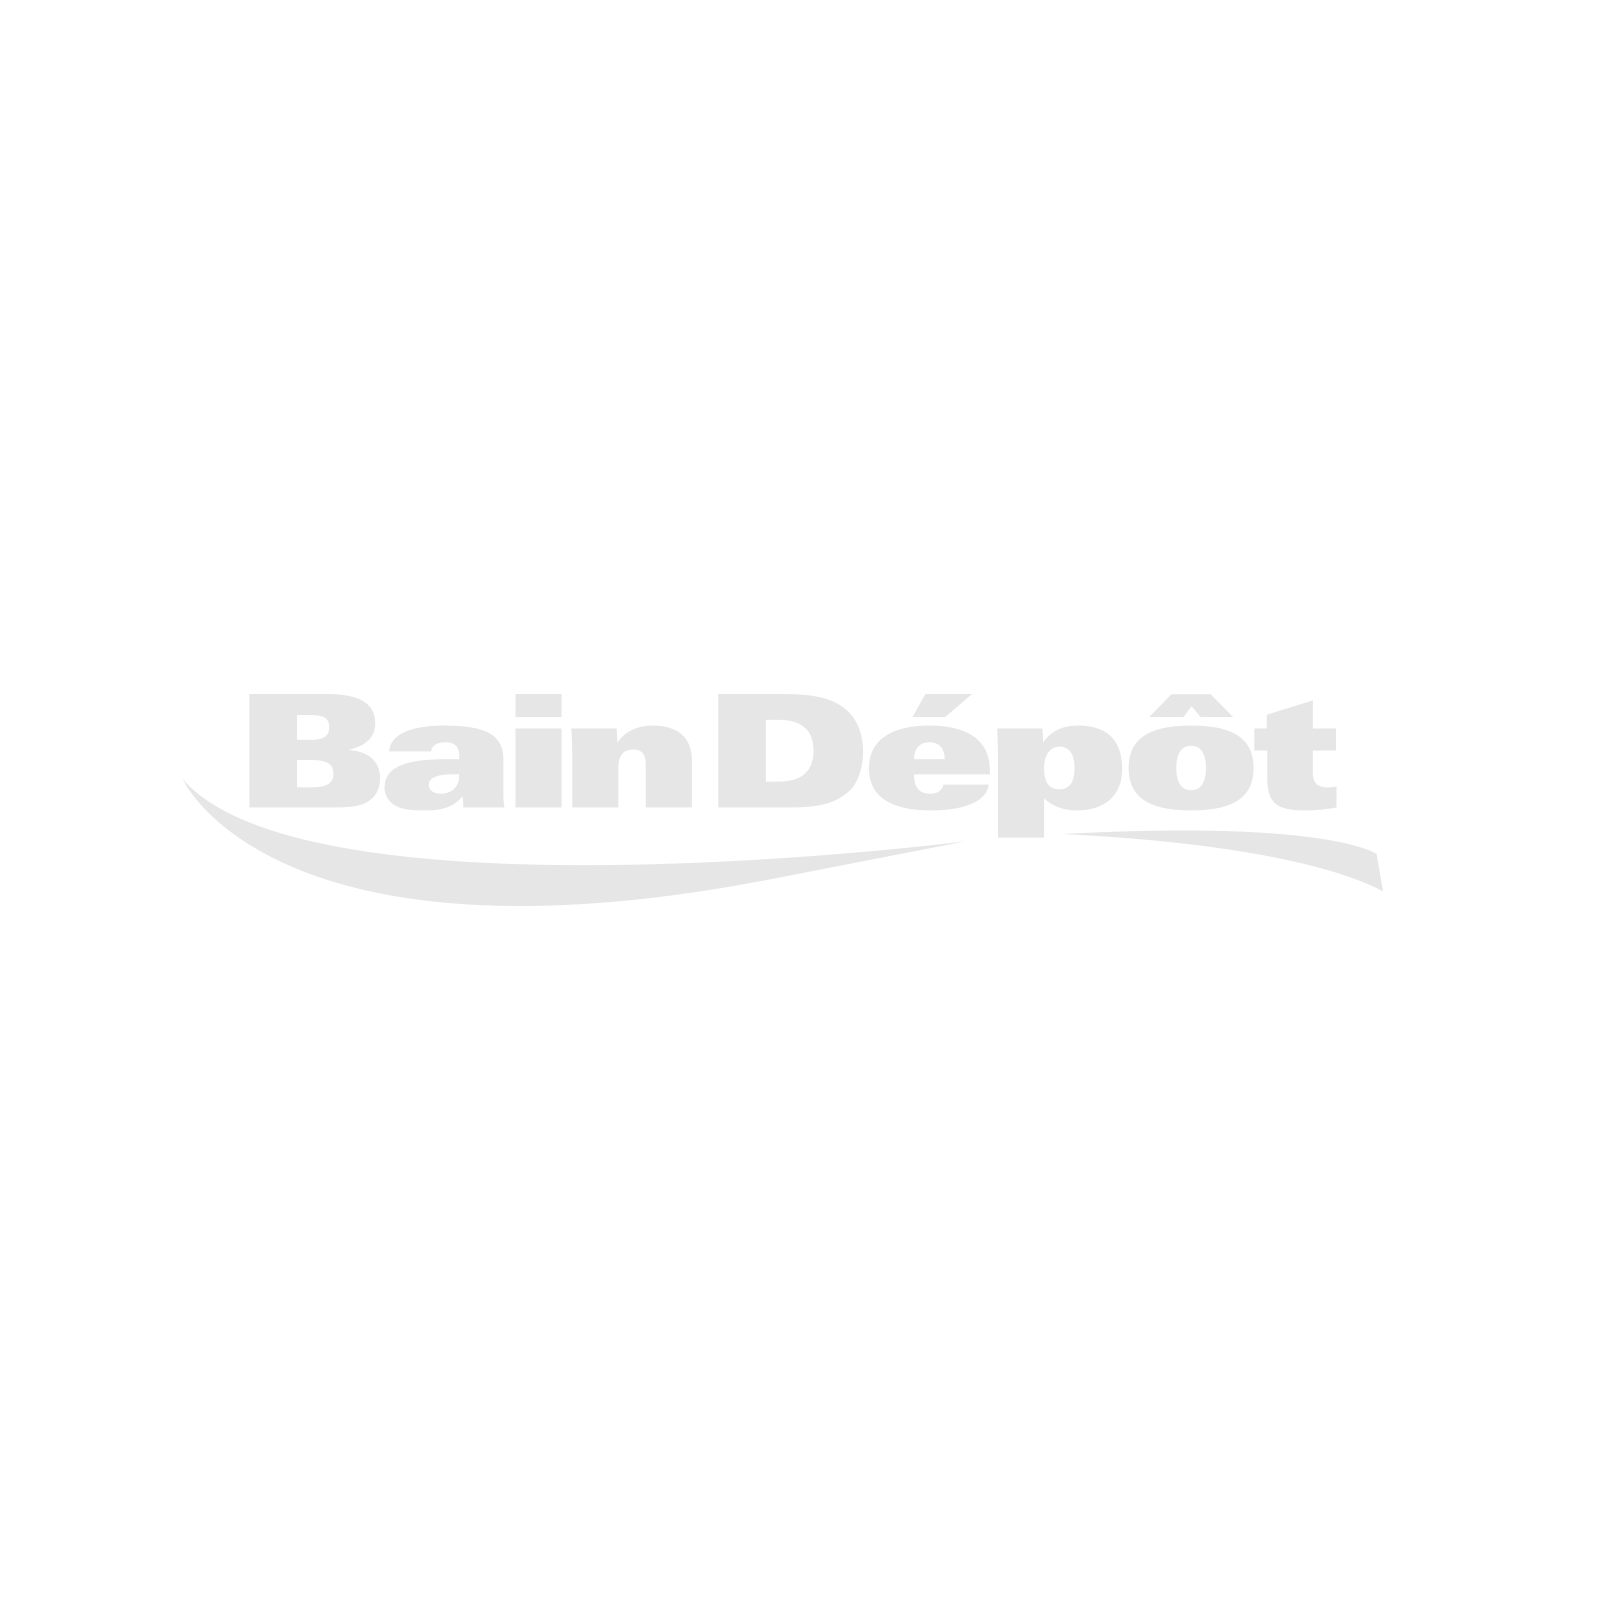 One-piece dual-flush toilet LEX